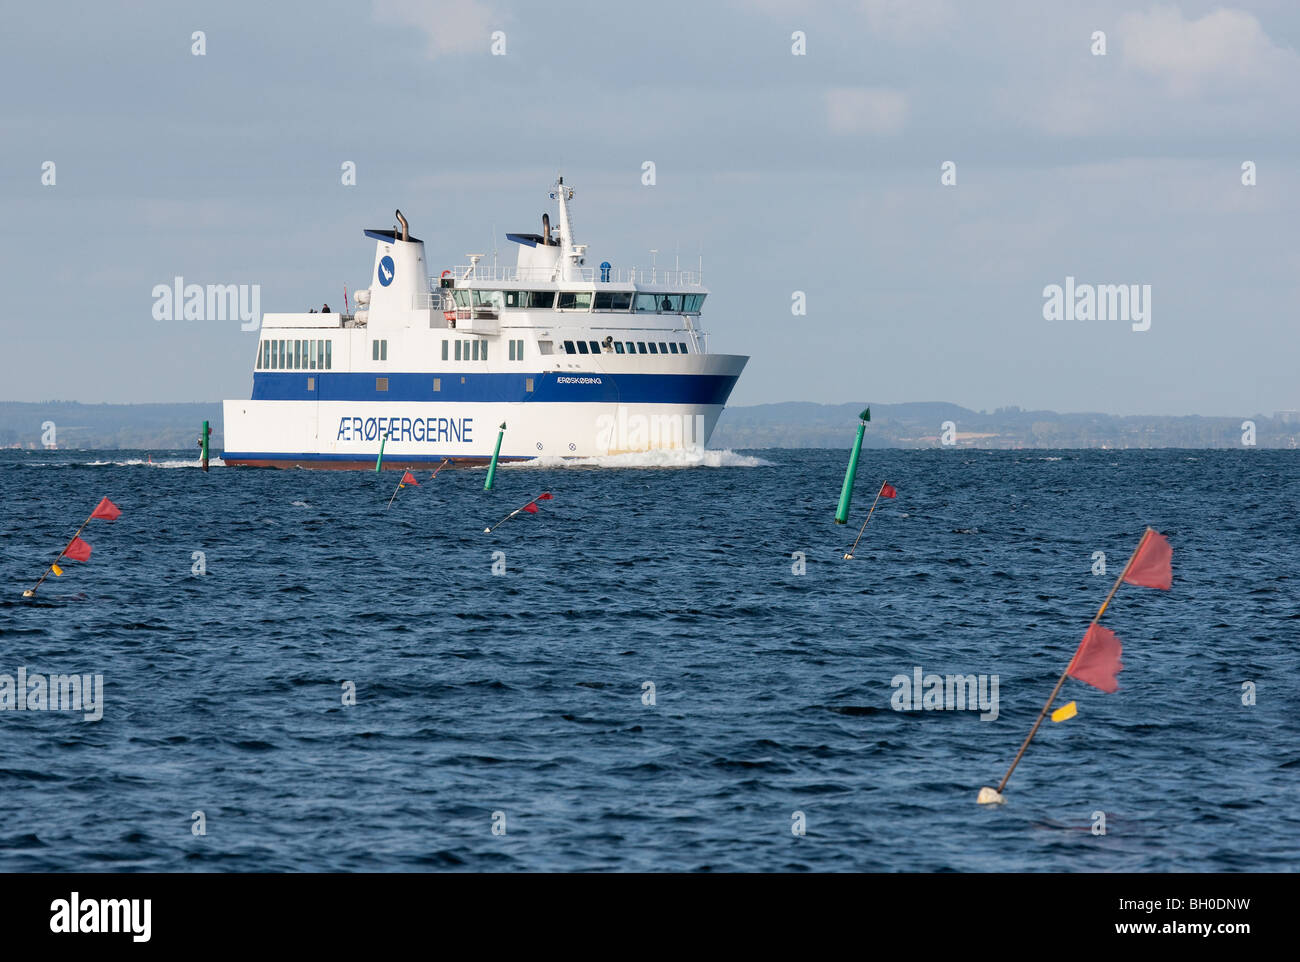 A Danish domestic ferry at the waters of southern Funen. - Stock Image